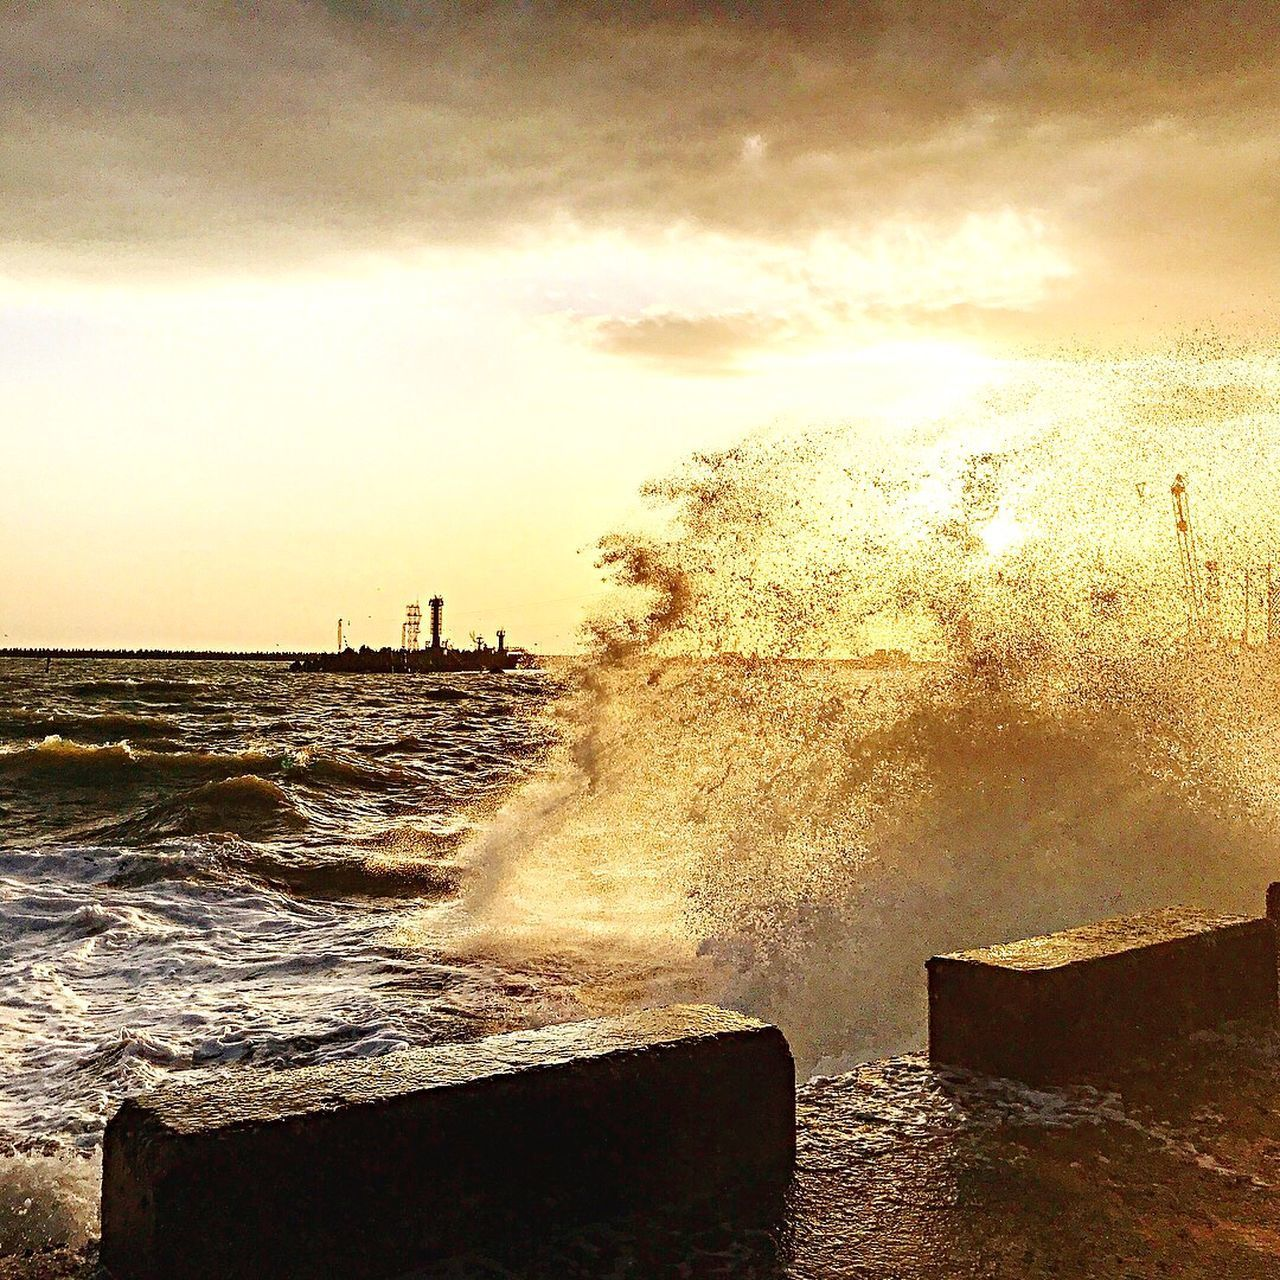 water, sky, sea, motion, nature, power in nature, wave, power, splashing, breaking, hitting, beauty in nature, cloud - sky, sunset, no people, crash, force, outdoors, scenics - nature, pollution